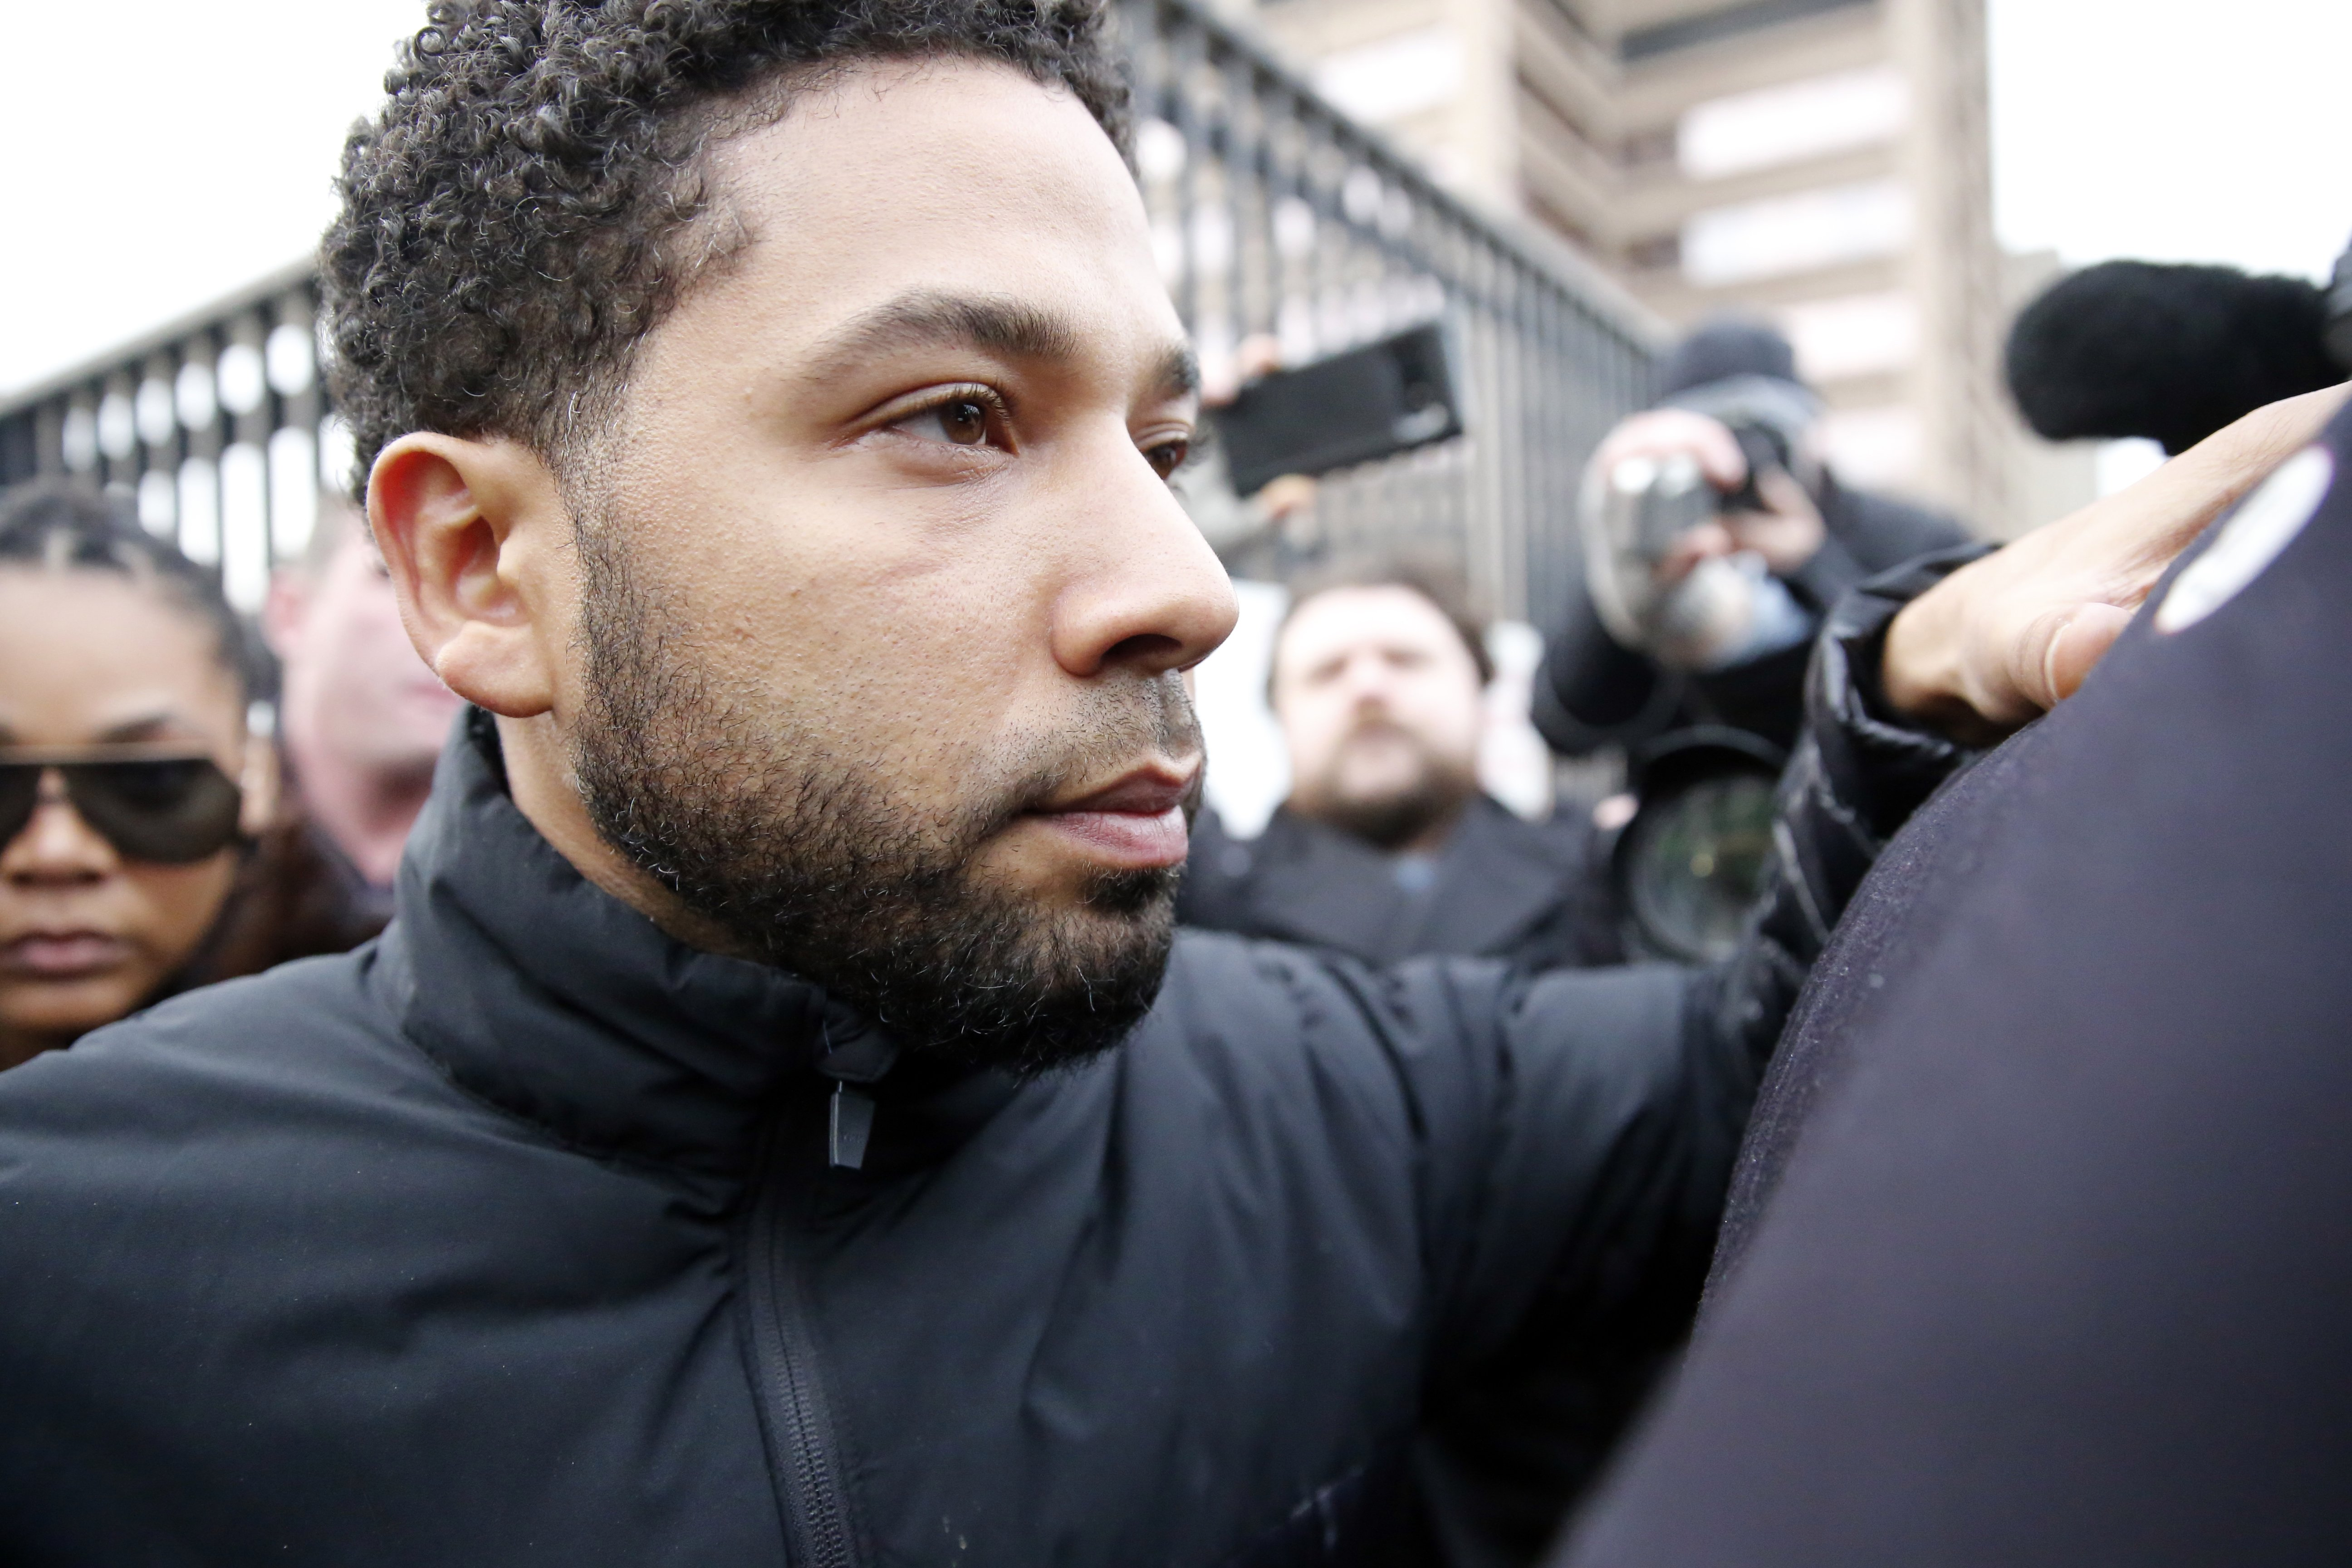 Jussie Smollett leaving the Cook County Jail on bond | Photo: Getty Images